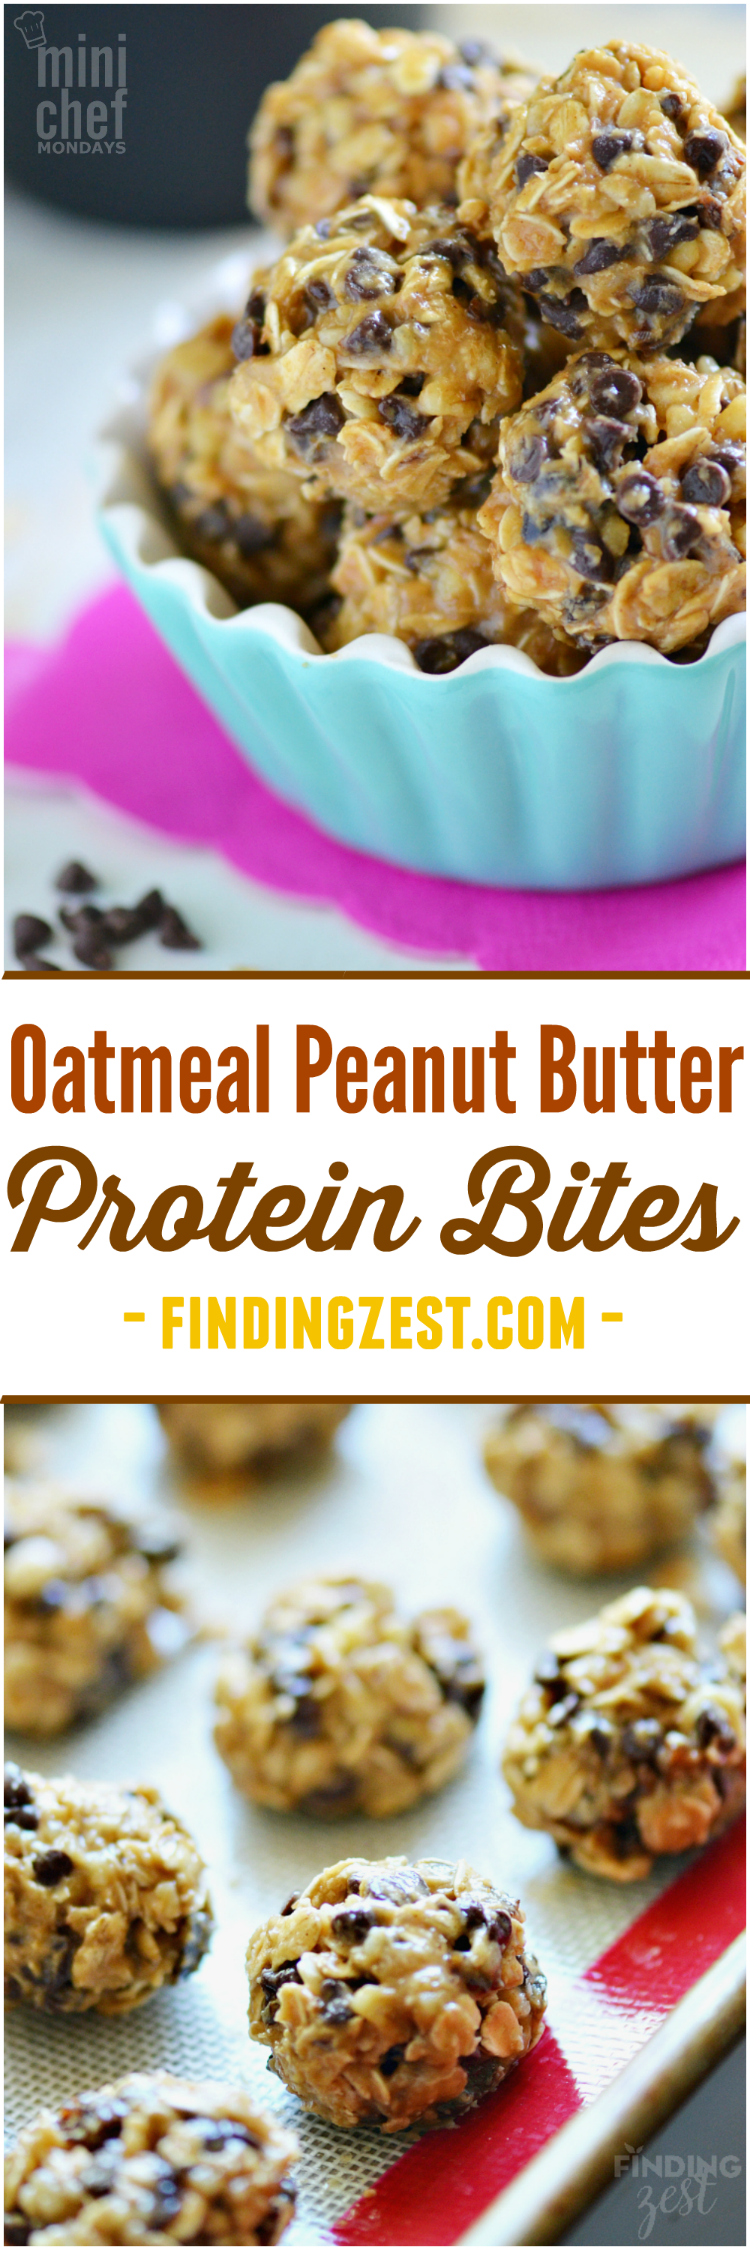 You'll definitely want to try making this no-bake Oatmeal Peanut Butter Protein Bites recipe! This kid friendly snack has oatmeal, peanut butter, walnuts, honey and chocolate chips, making it perfect for an afternoon pick me up, school lunch or make ahead breakfast to save time on busy mornings!